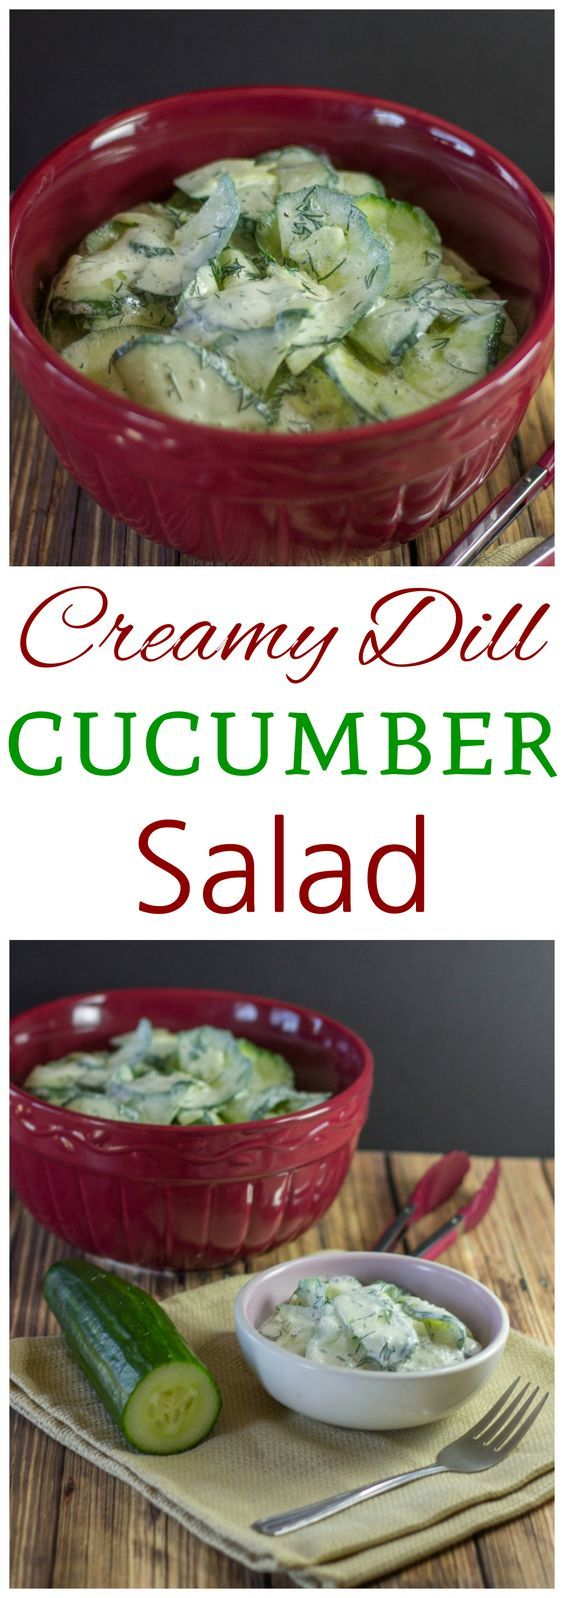 Here's a creamy low carb dill cucumber salad made with a sour cream and vine...